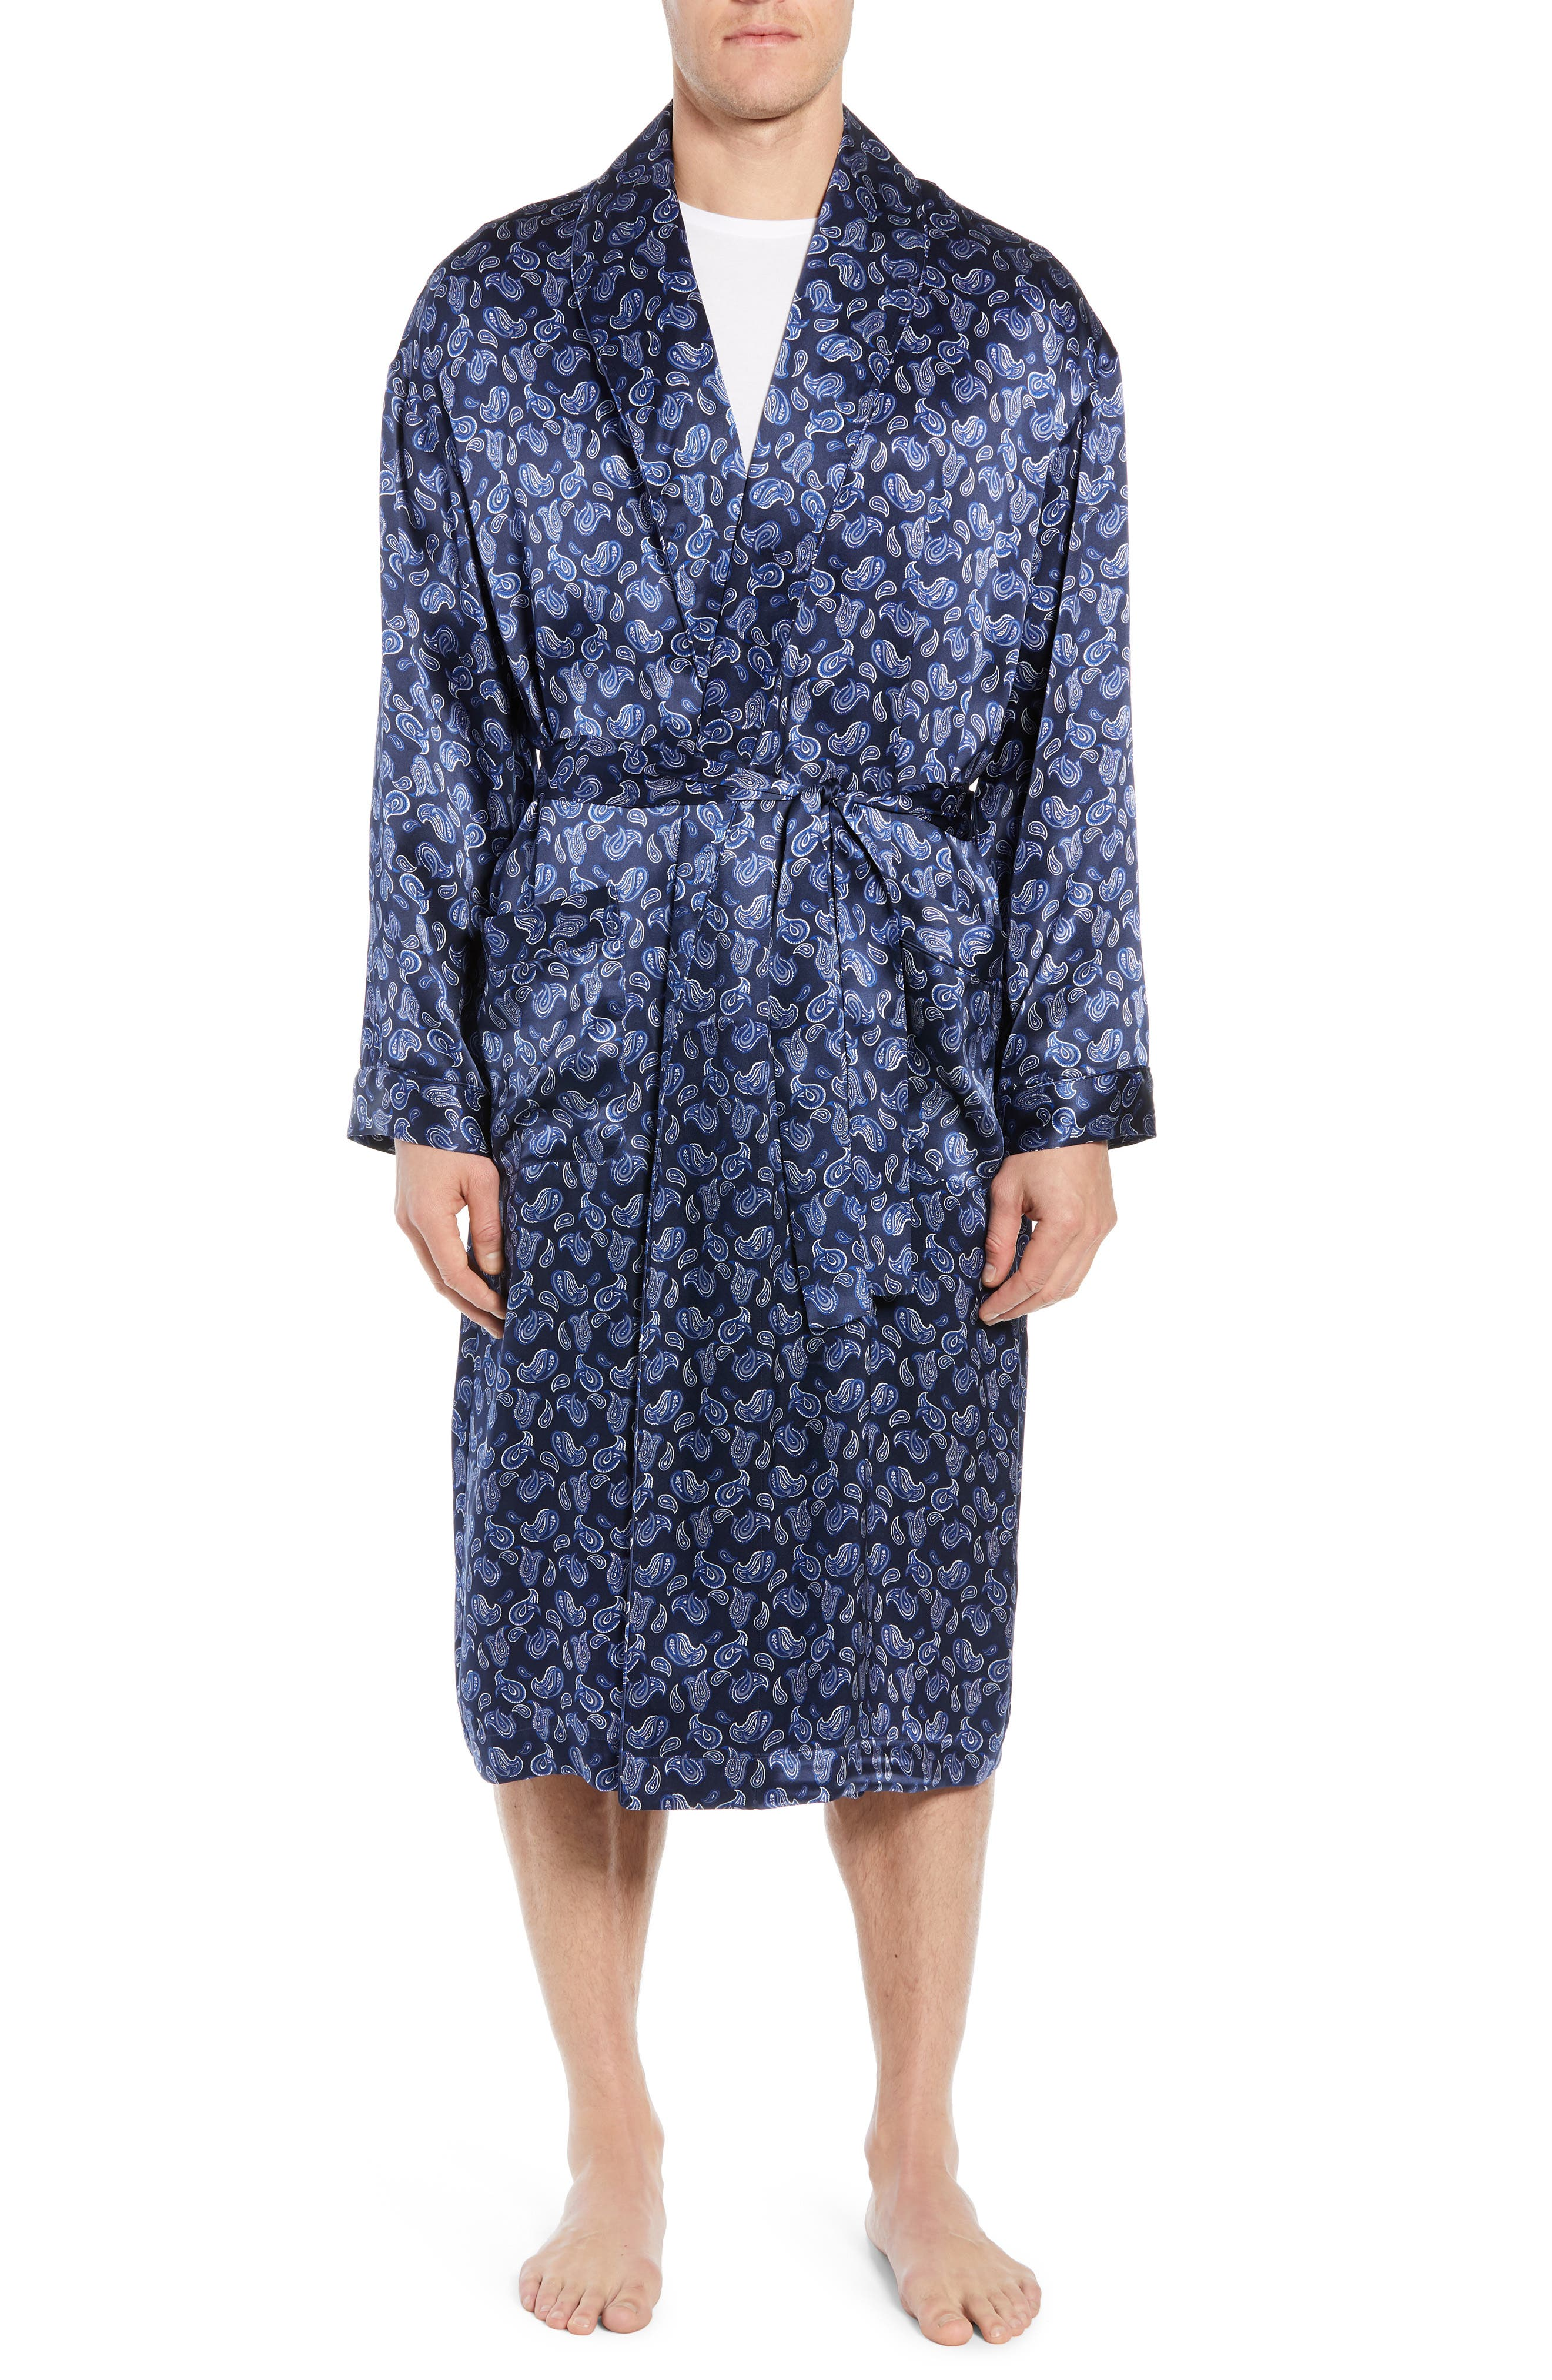 MAJESTIC INTERNATIONAL, Sapphire Silk Robe, Main thumbnail 1, color, NAVY PAISLEY